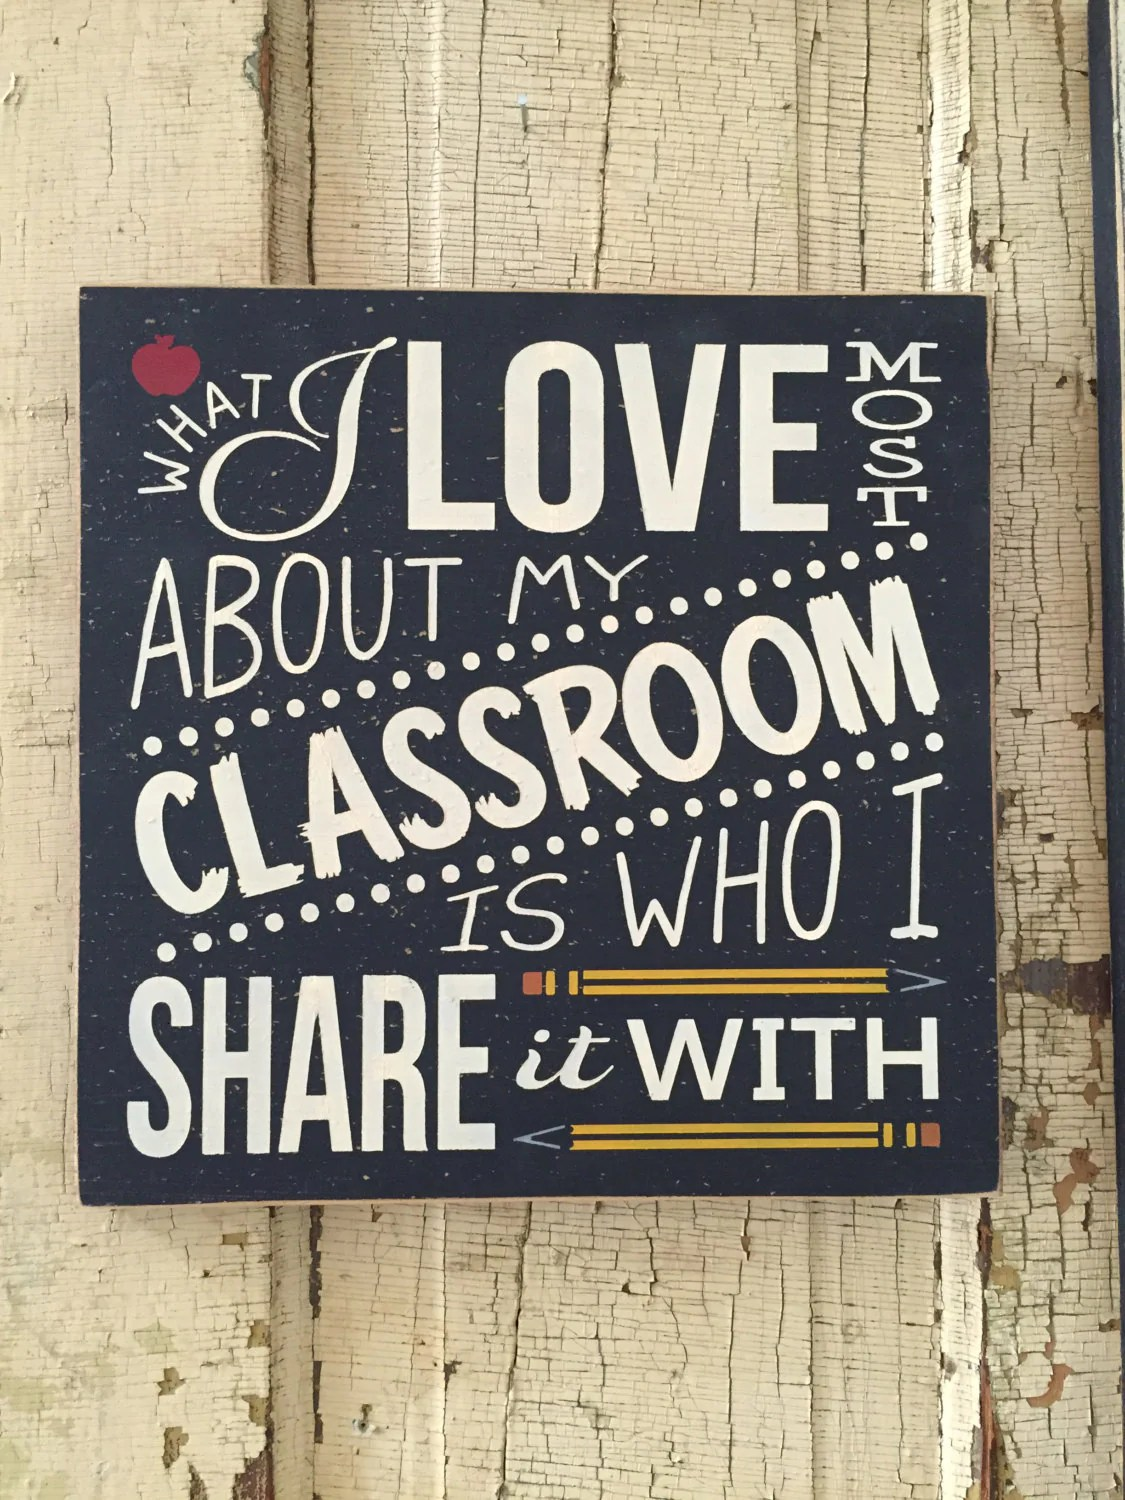 What I Love Most About My Classroom Is Who I Share It With It